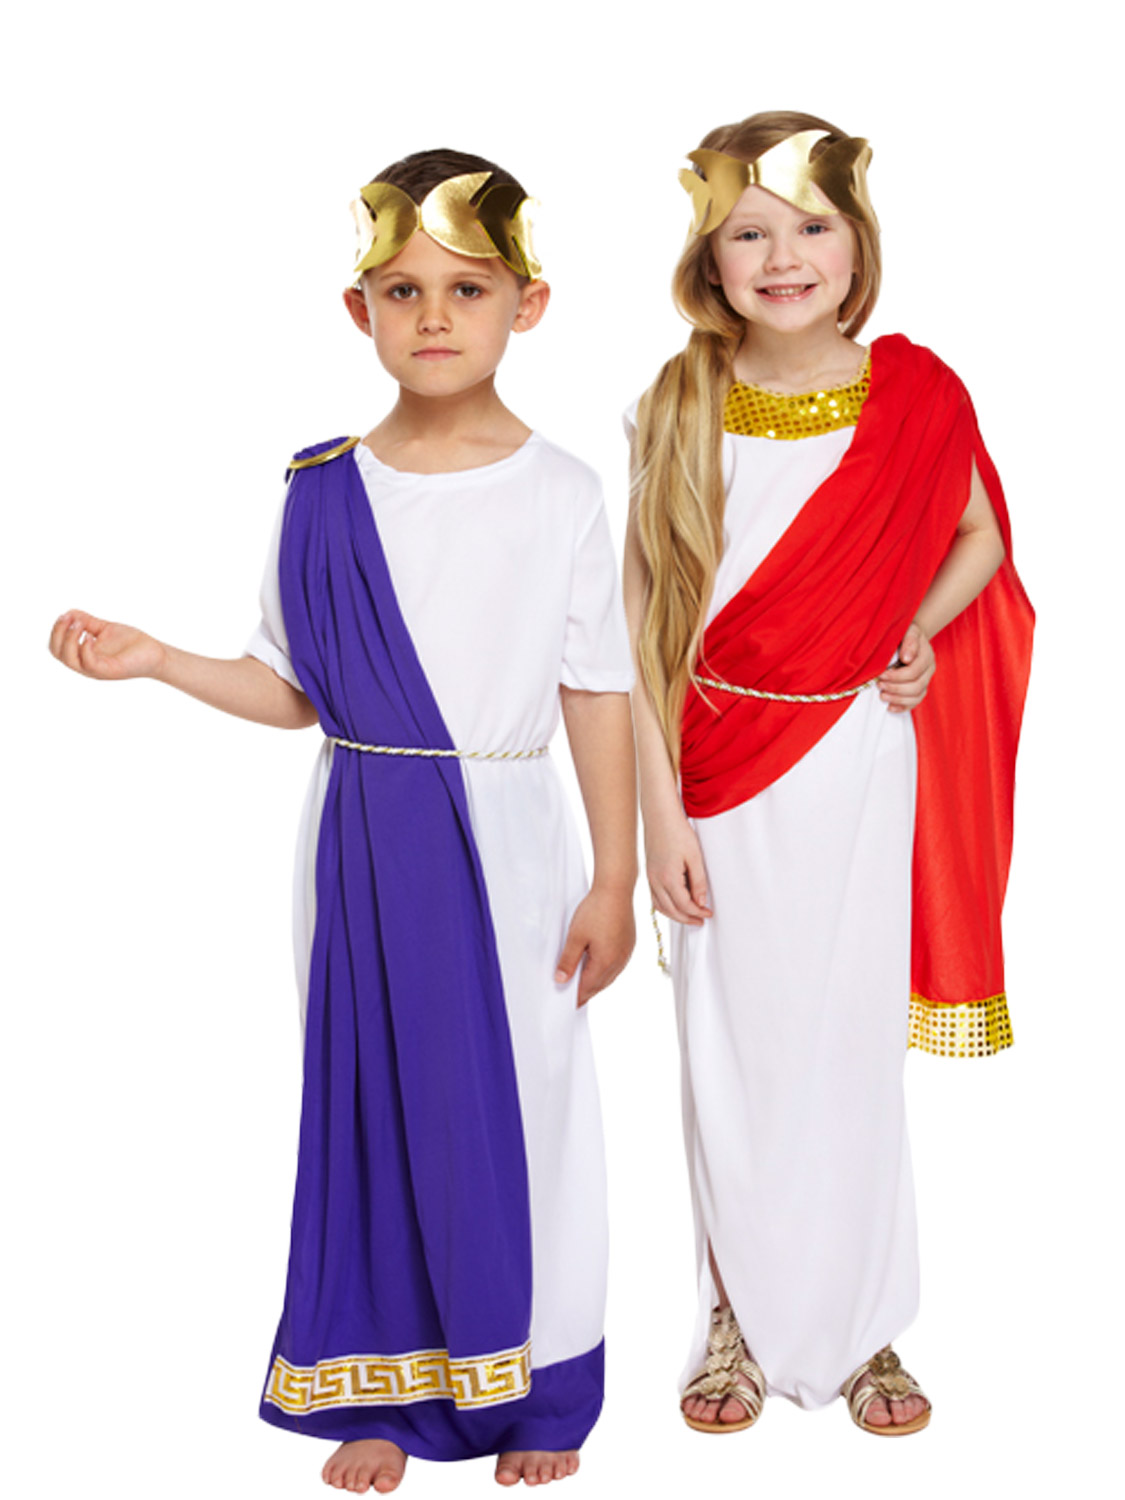 Greek clothing was sold in the agora, the marketplace. You could buy beautifully decorated clothes. But they were expensive. Most families made most or all of their tunics, cloaks, hats, shoes, and other clothing.